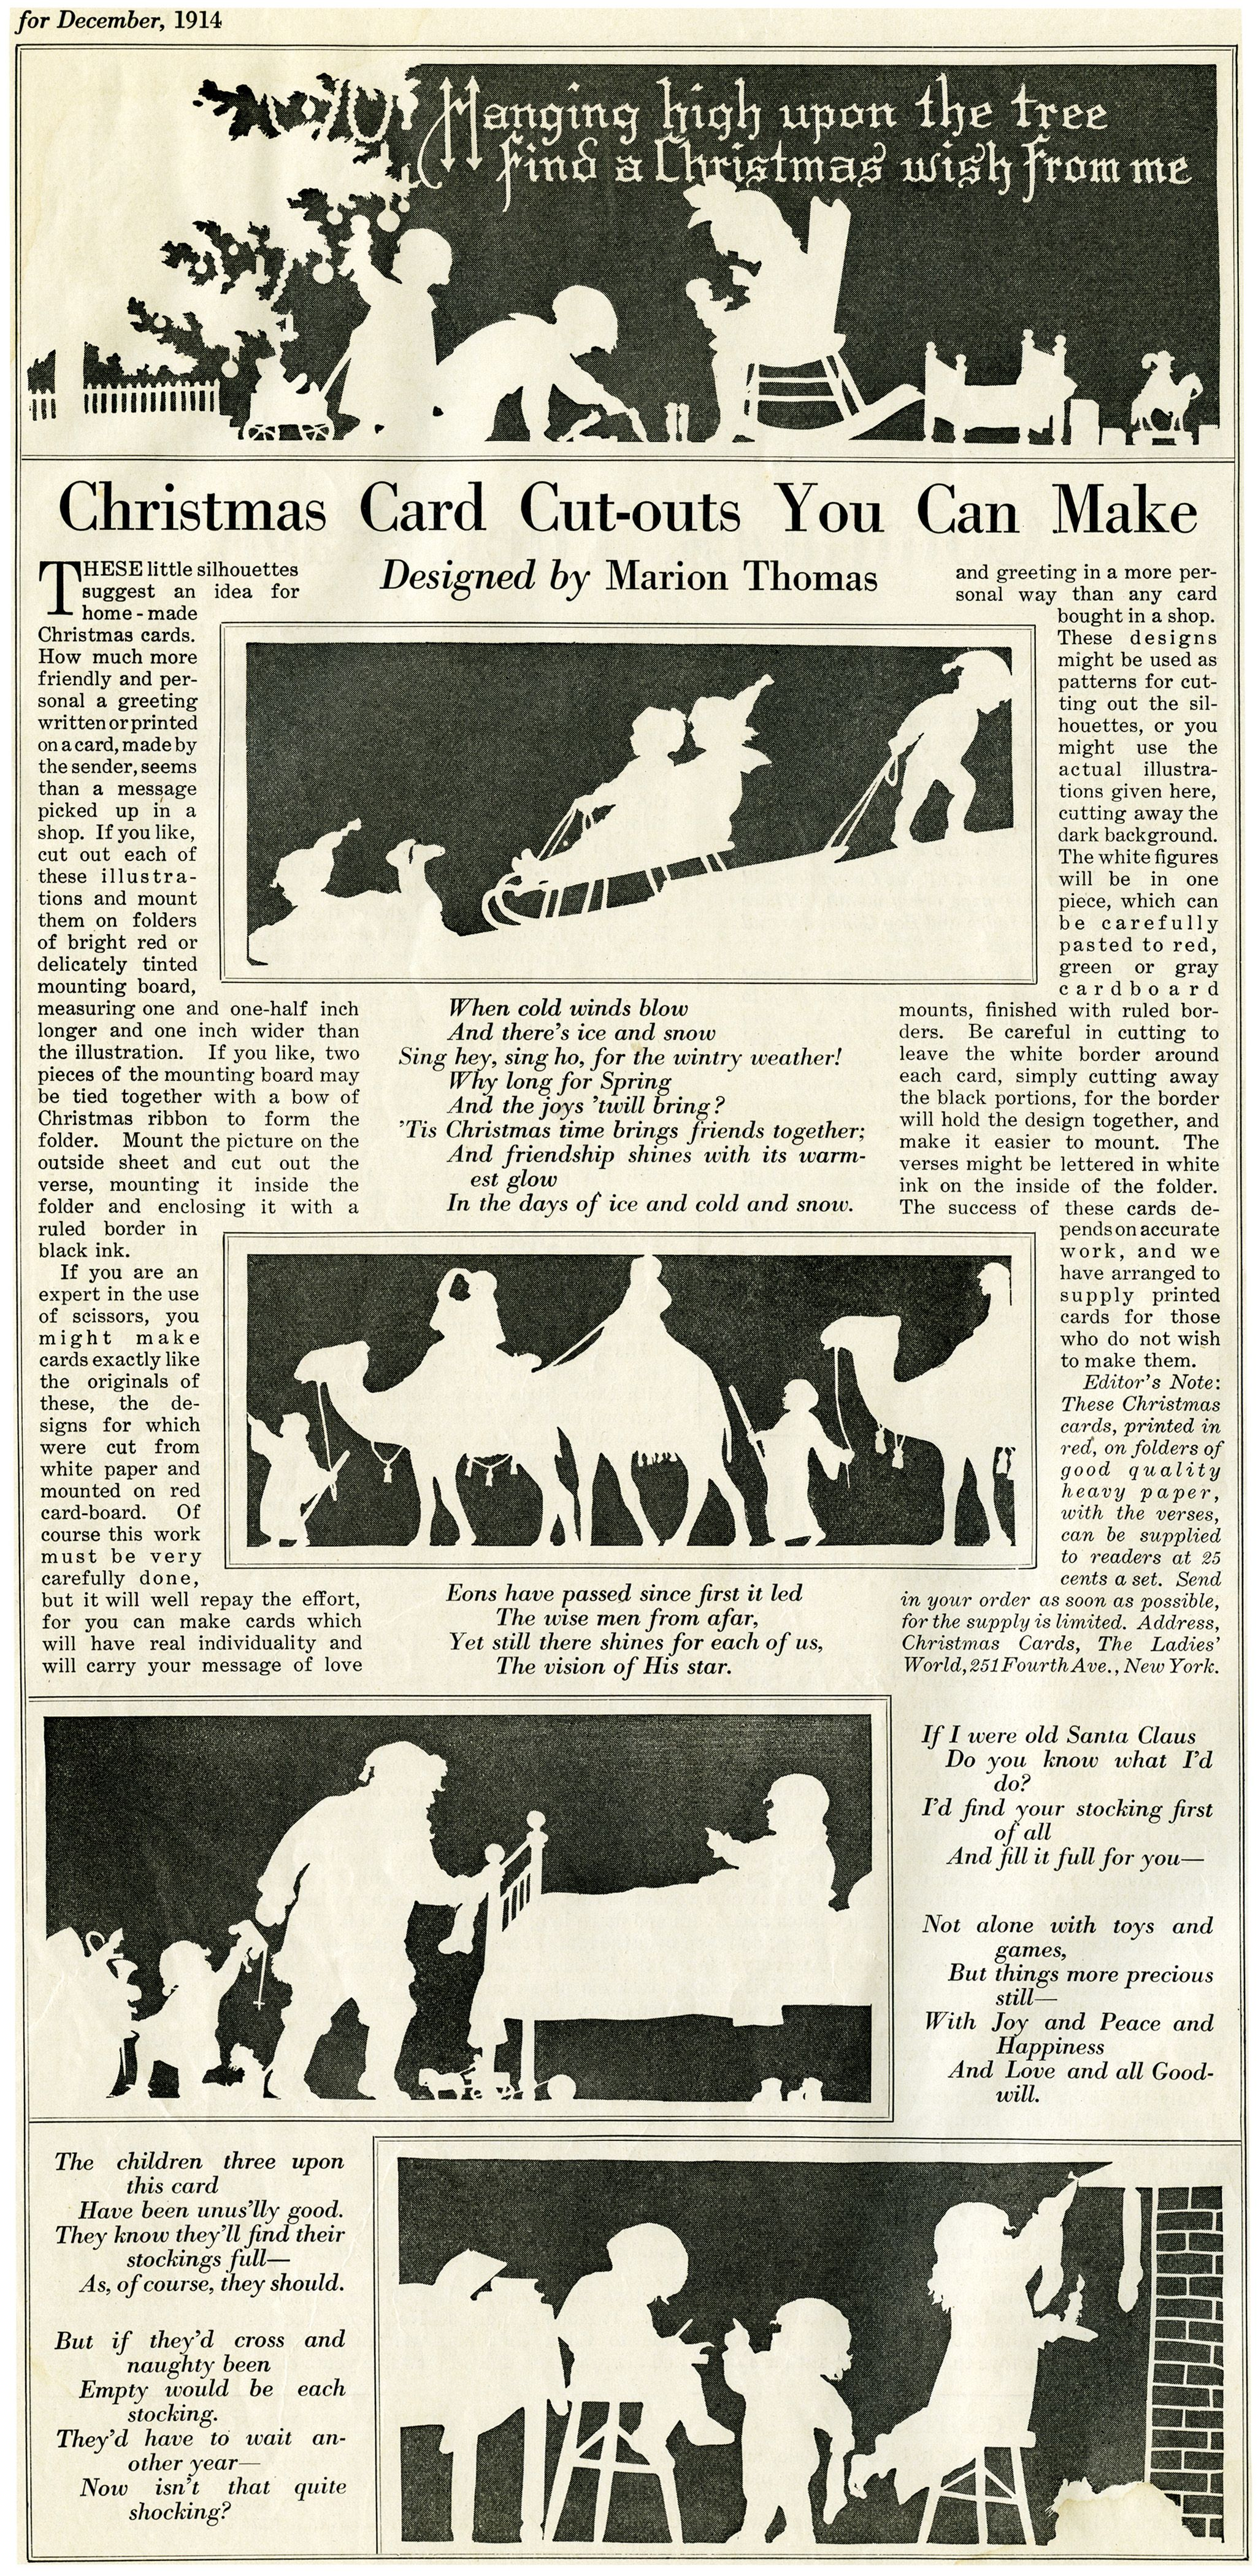 free digital christmas card cutouts this page is from the december 1914 issue of the ladies world magazine its a large image 68 x 14 at 300 dpi 38 - Free Digital Christmas Cards